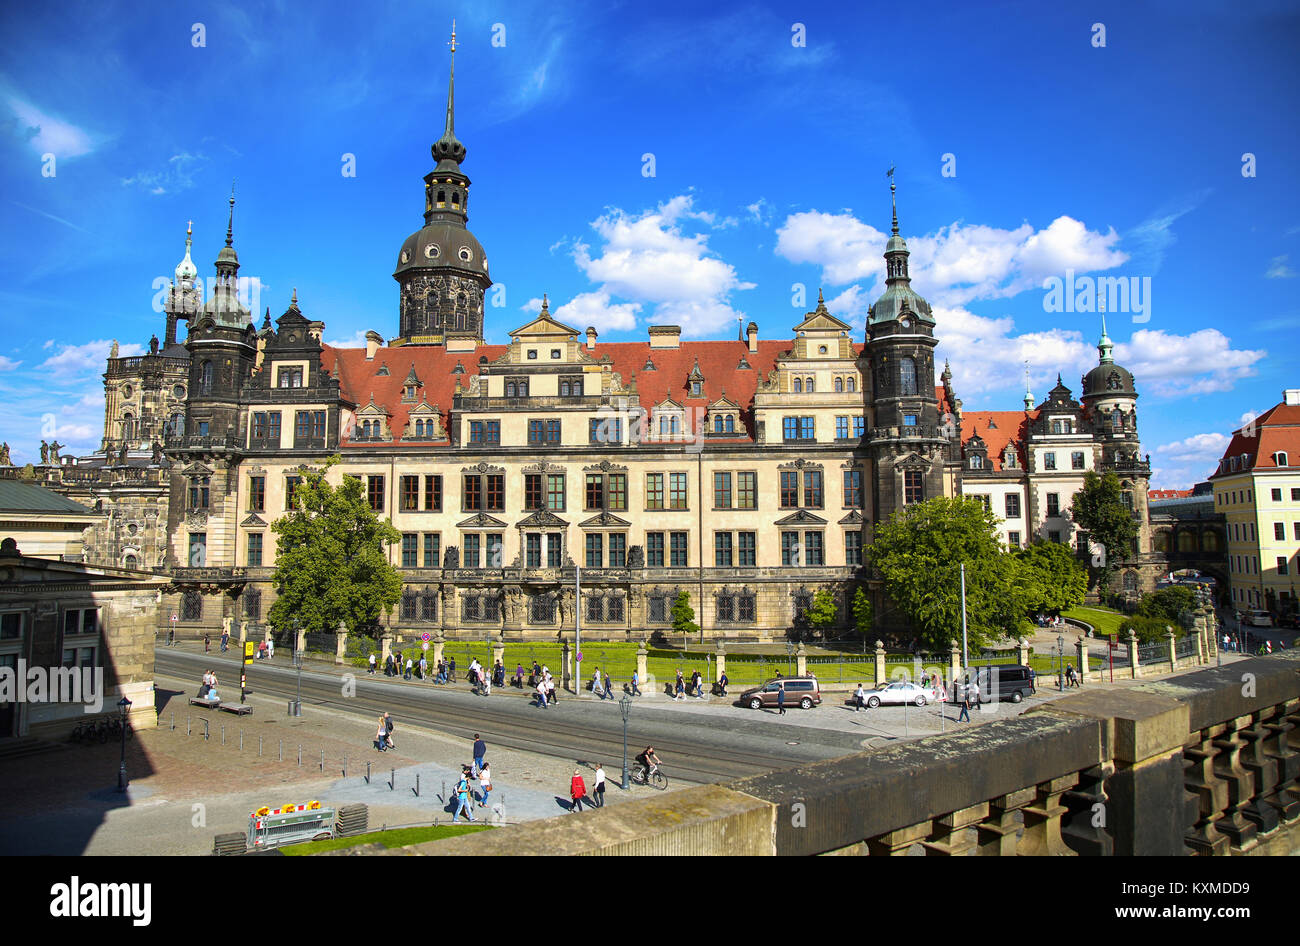 DRESDEN, GERMANY – AUGUST 13, 2016: Tourists walk on Sophienstrasse street and majestic view on  Saxony Dresden - Stock Image